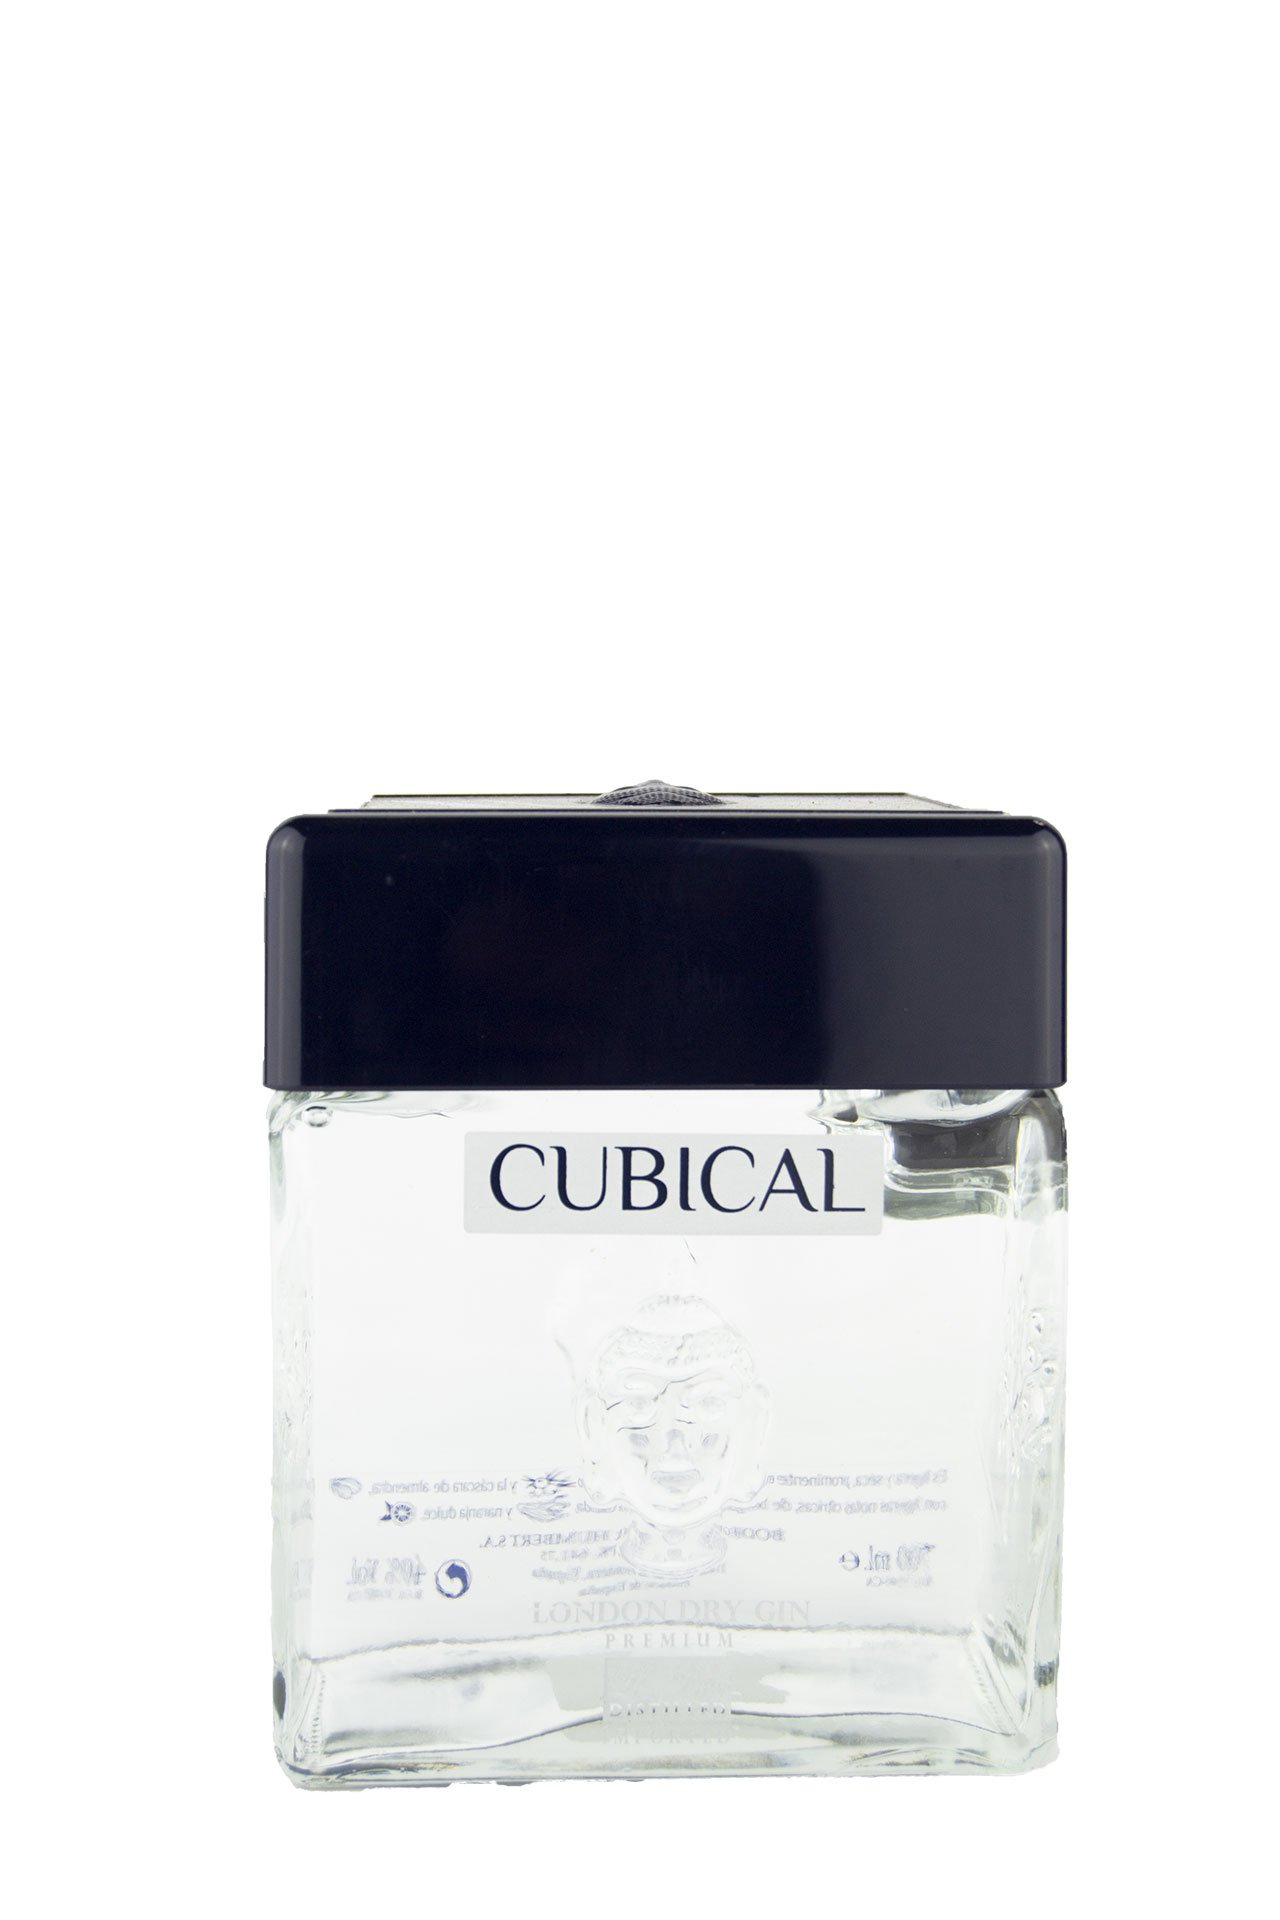 Cubical – London Dry Premium